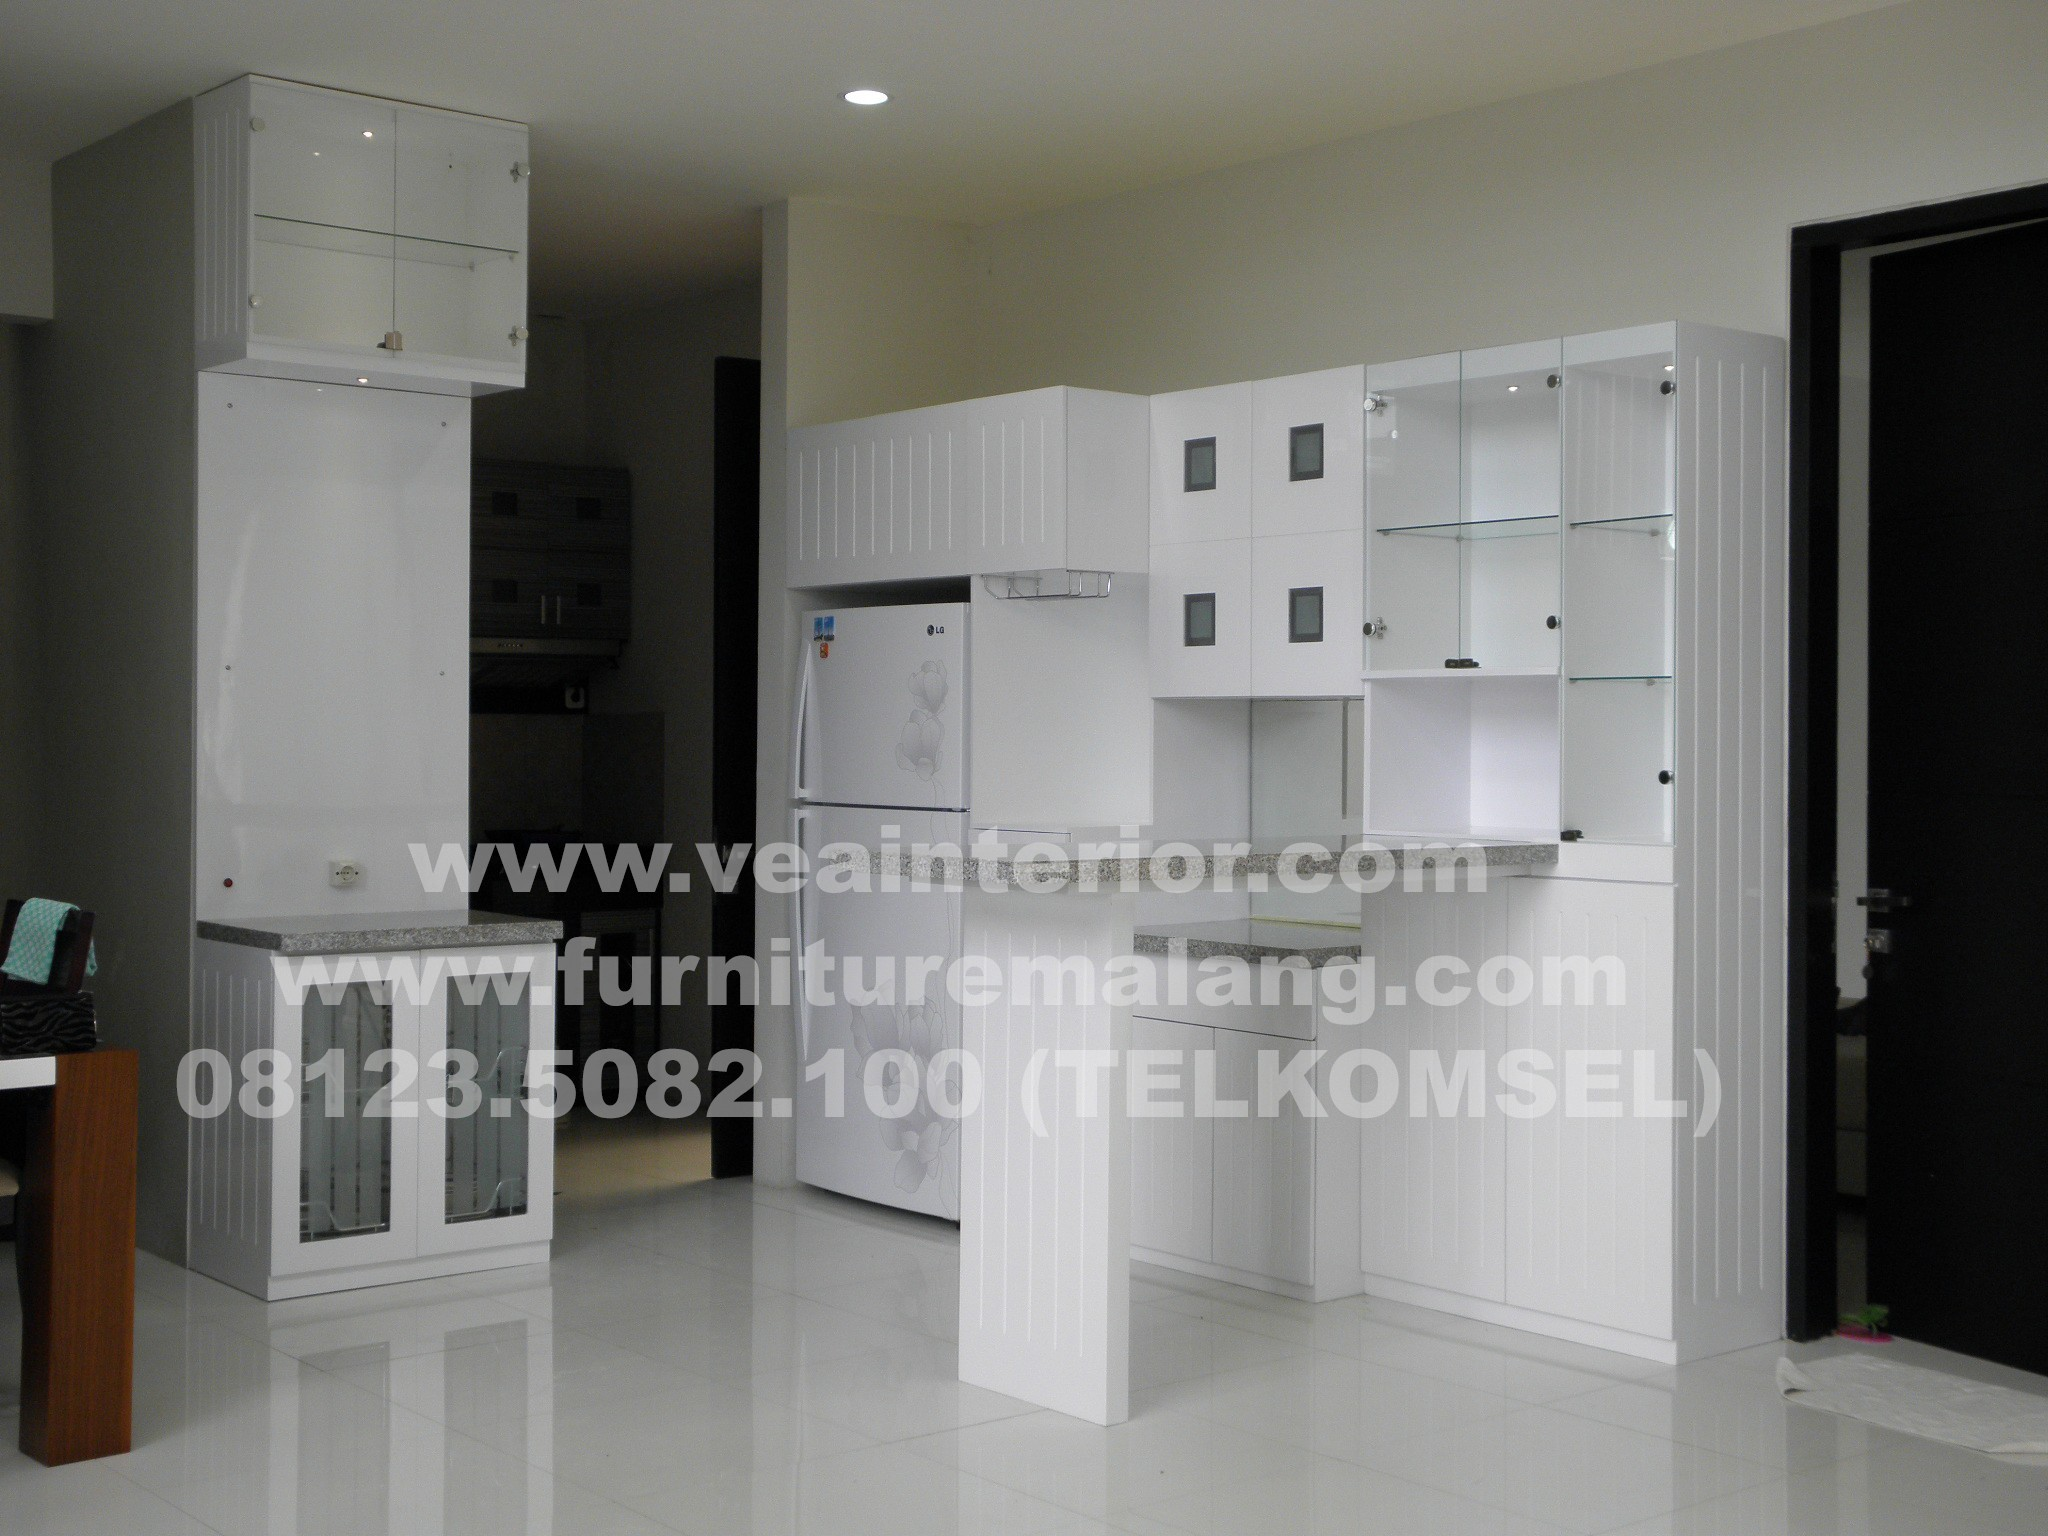 Desain Dapur Leter U Terbagus Untuk Kitchen Set Mini Bar Surabaya Kitchen Appliances Tips and Review Of Desain Dapur Leter U Terindah Untuk New Proposal Letter format Recruitment Agency